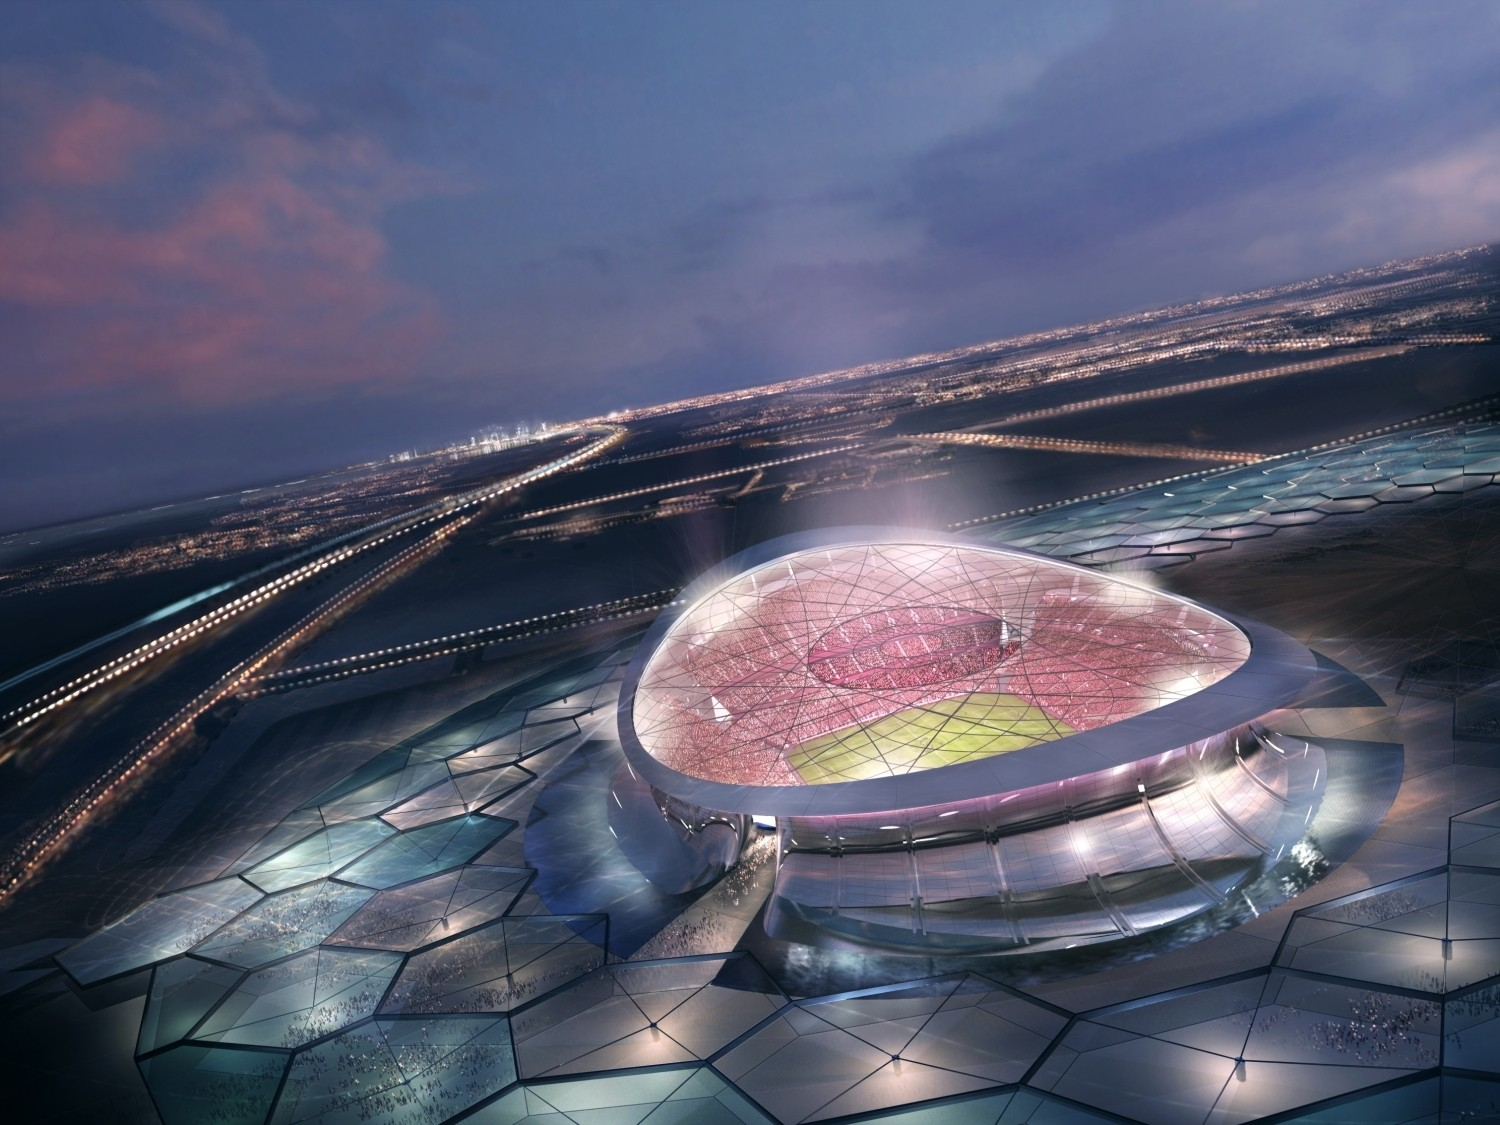 Doubts Over Qatar's World Cup Future Causing Tension Among Architects, Foster + Partners' design for the 'Lusail Iconic Stadium' which formed part of Qatar's initial bid.. Image © Foster + Partners